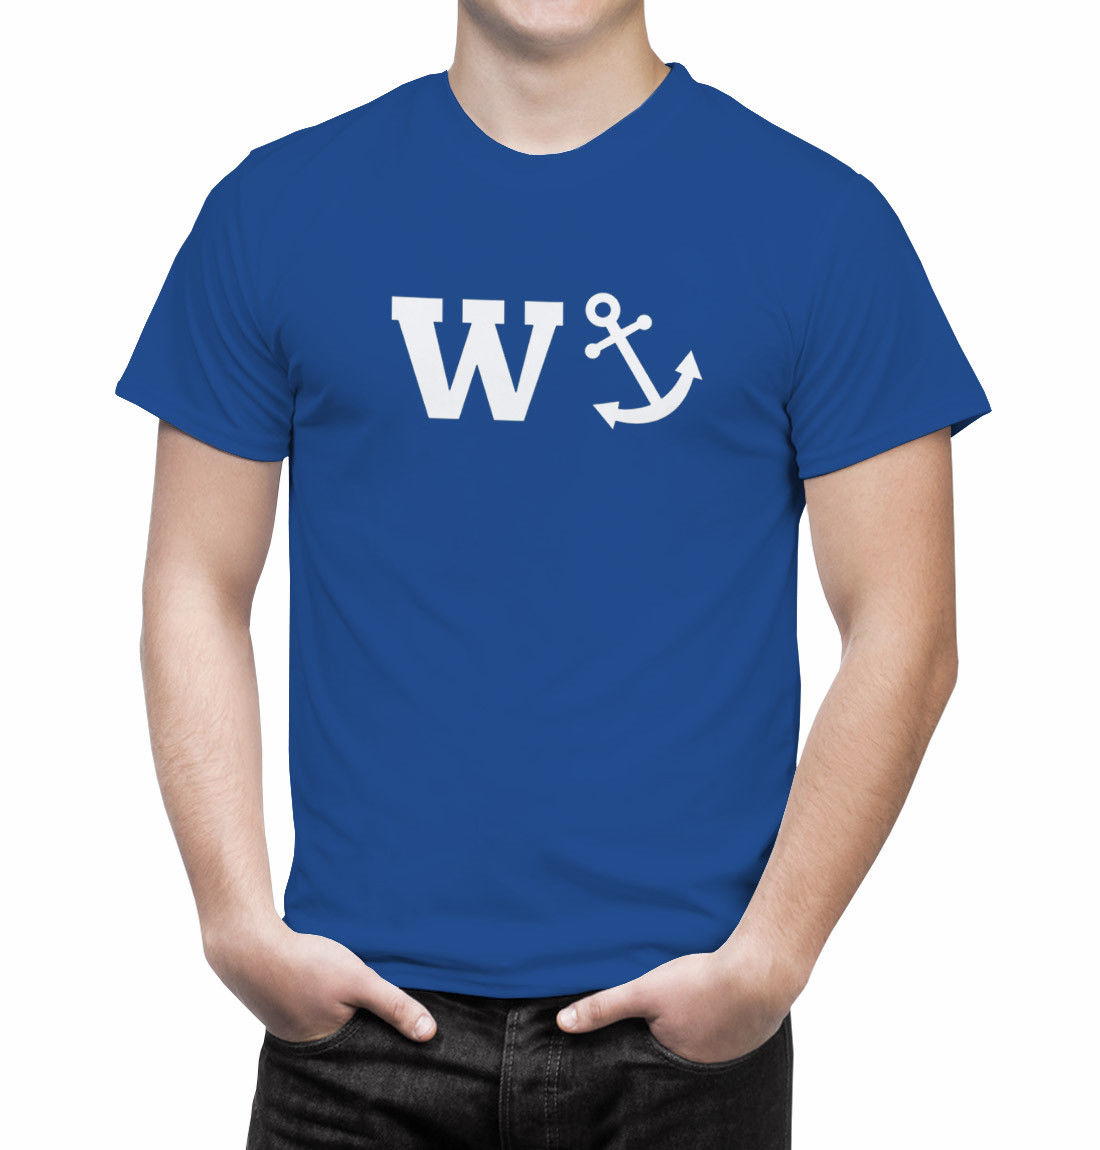 W*anker W Anchor Funny Offensive Mens T Shirt Fathers Day Sailor Gift Summer Short Sleeves T-Shirt Fashion